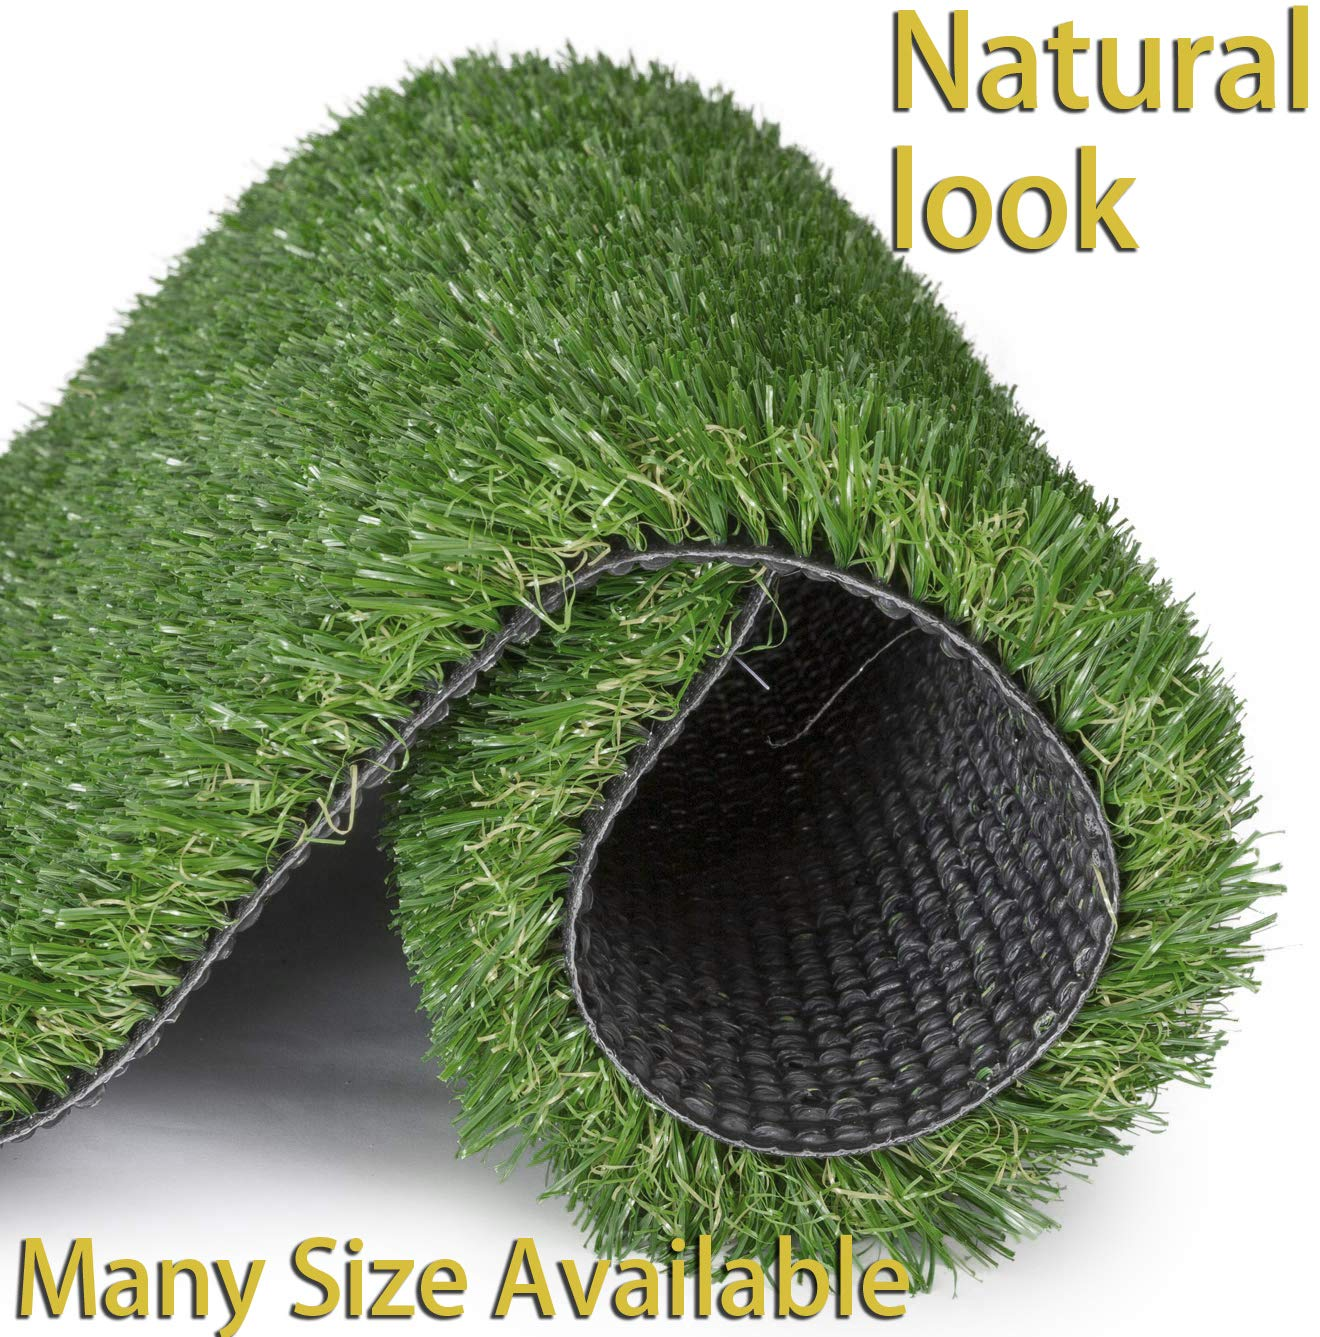 GT LIFE Artificial Grass for Dogs Synthetic Turf Artificial Lawn Rug with Drainage Holes&Rubber Backing, Blade Height 1.2inch Indoor/Outdoor Landscape(5'x5',Autumn Lawn)